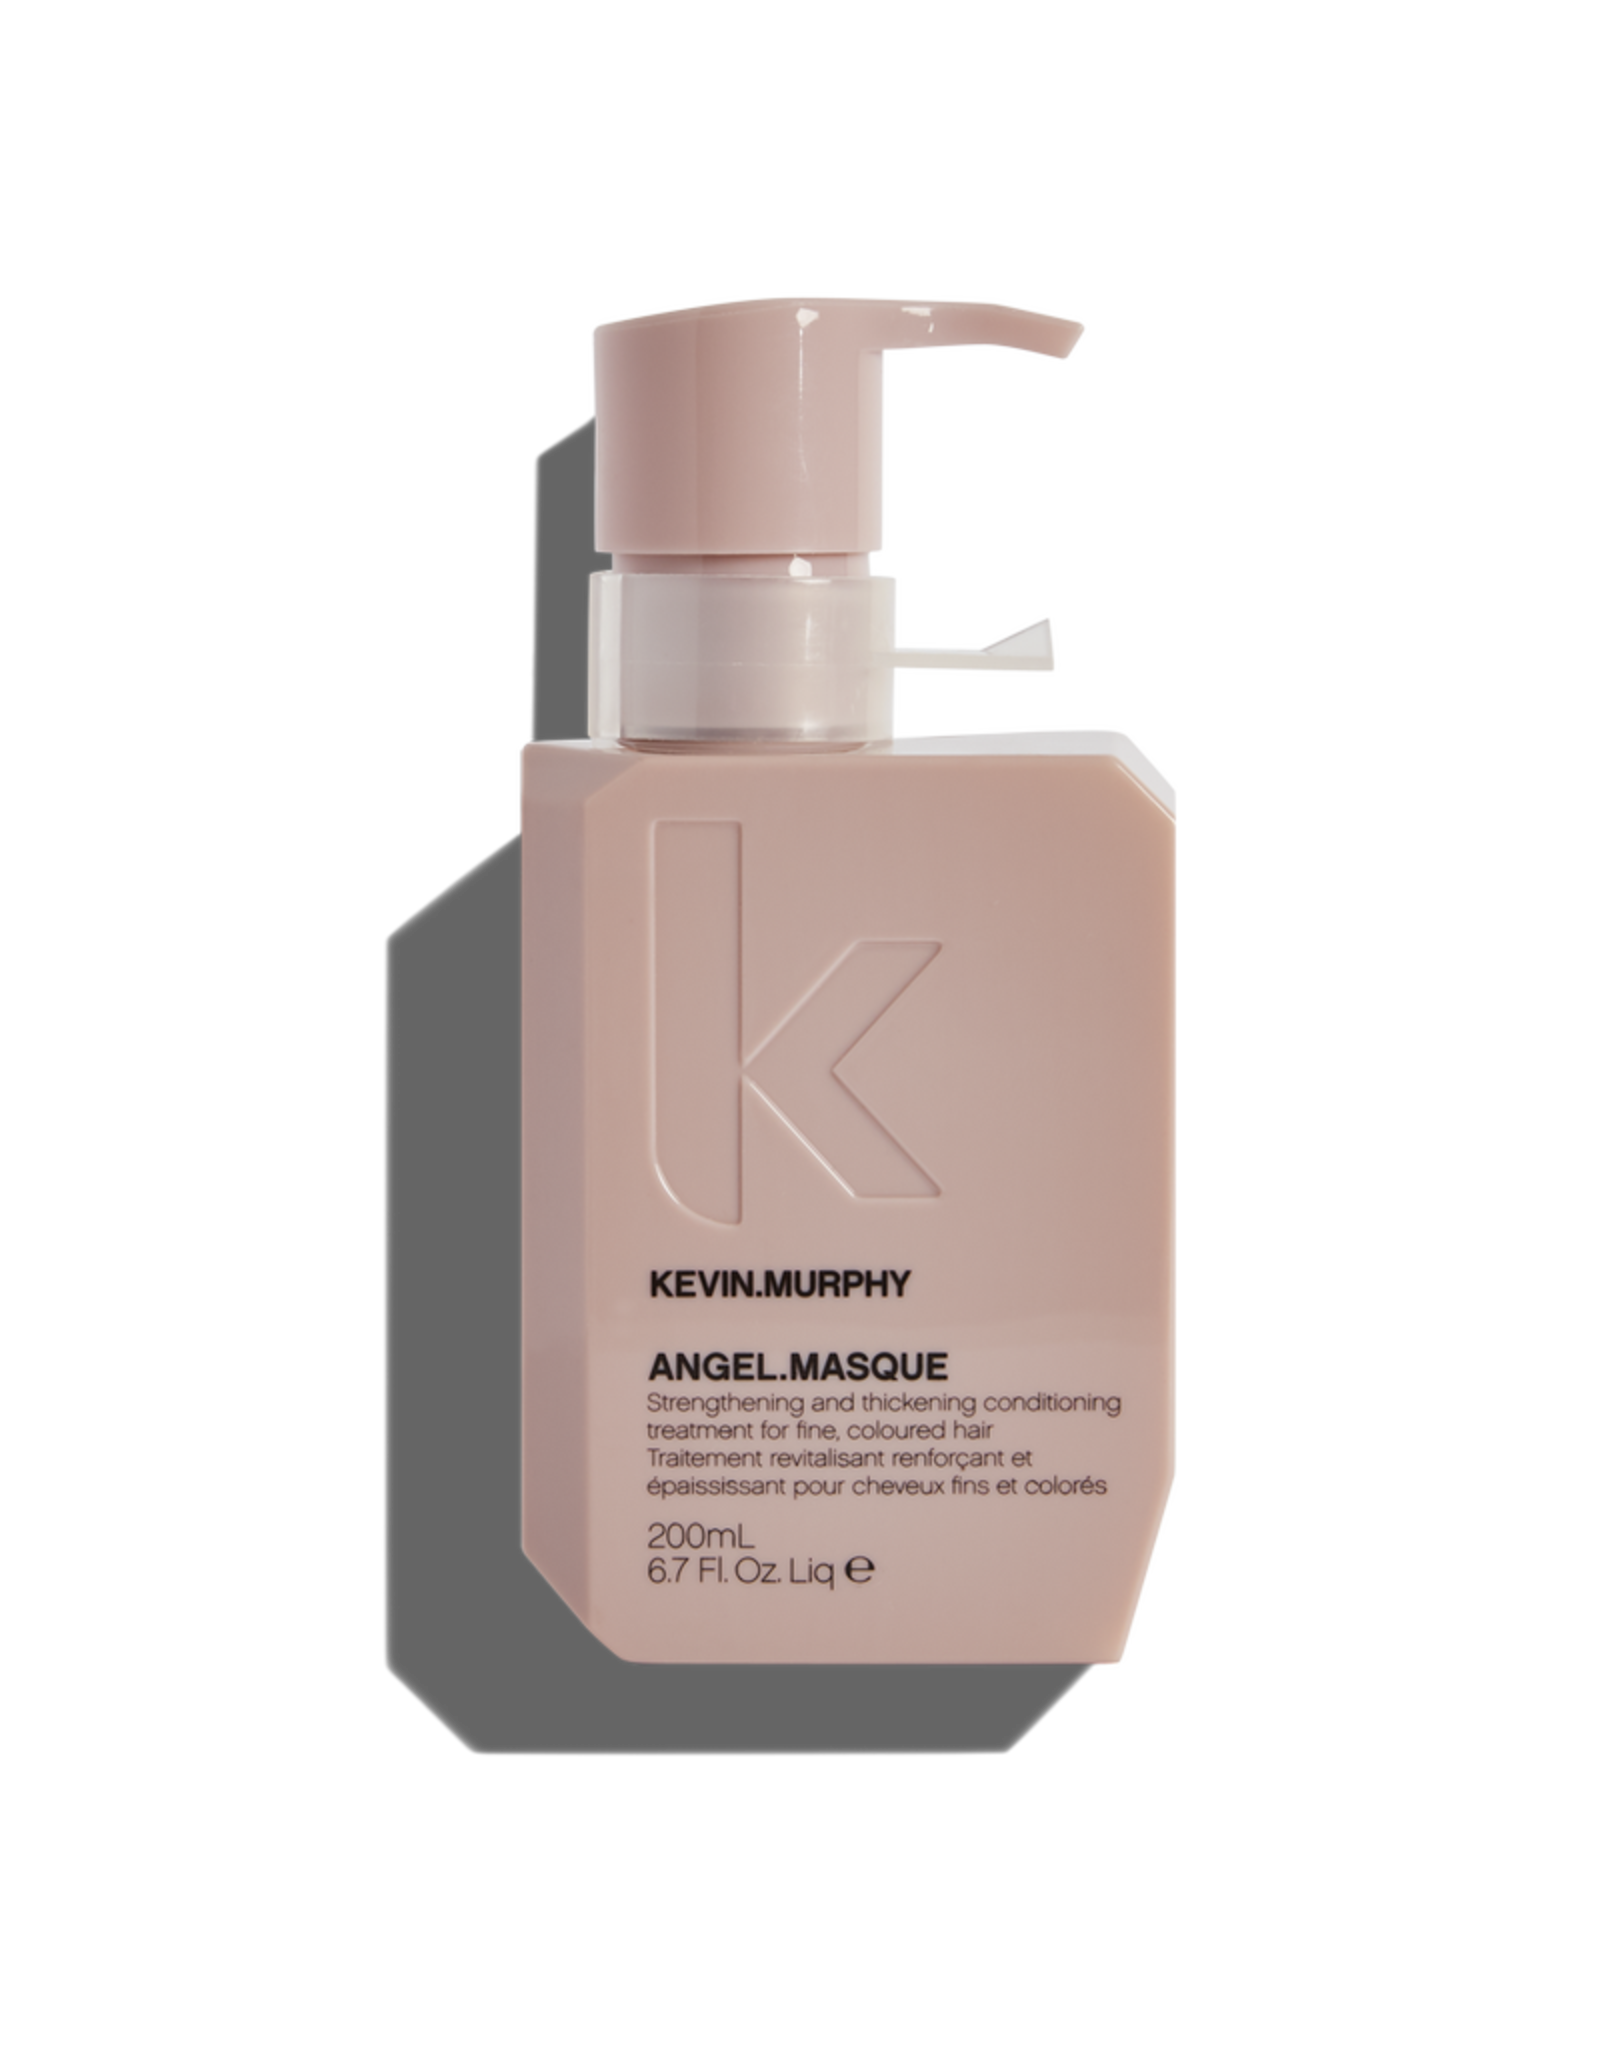 KEVIN.MURPHY Angel.Masque (200 ml)